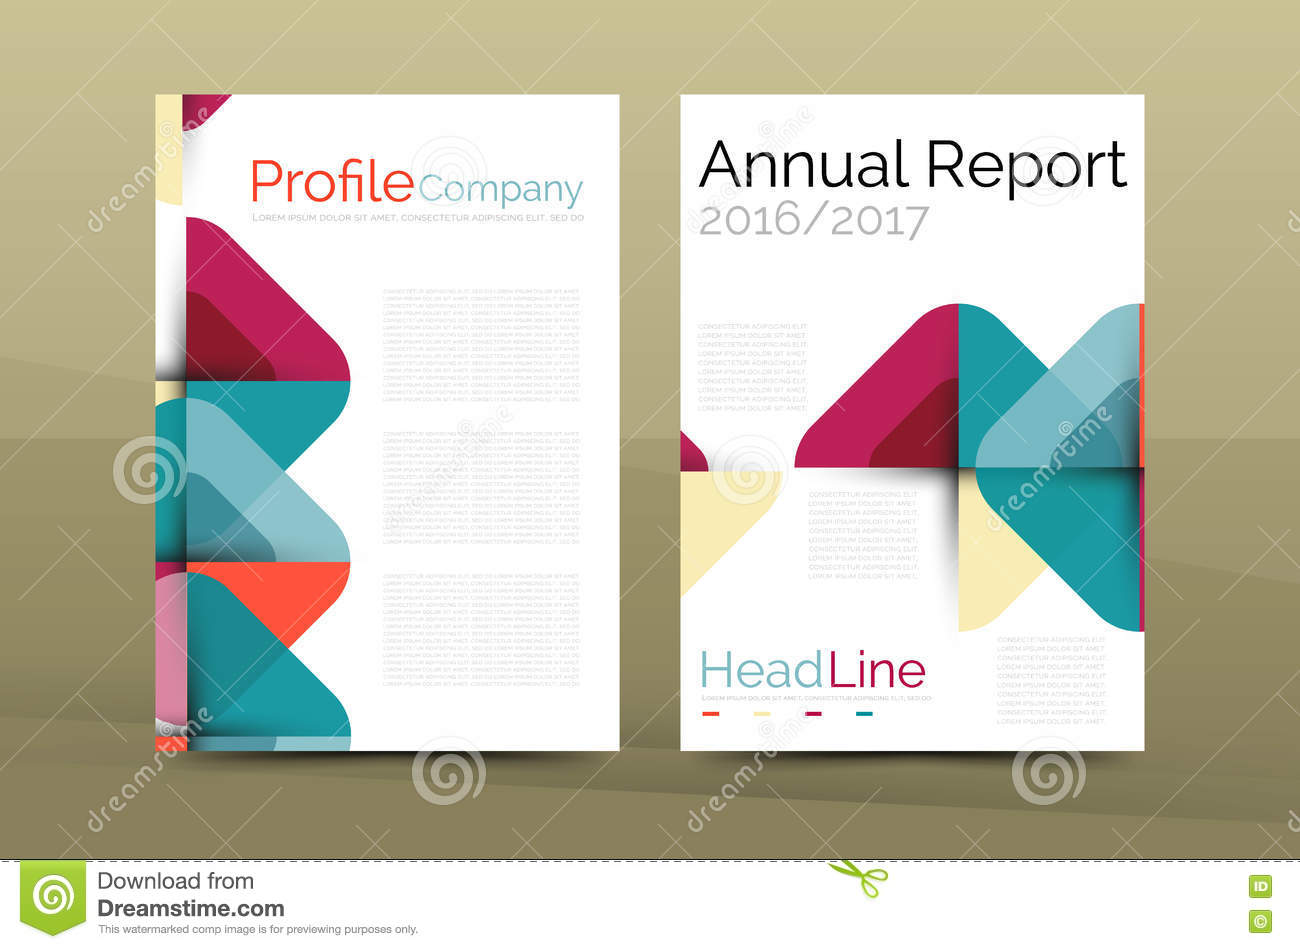 company profile brochure template - business company profile brochure template stock vector